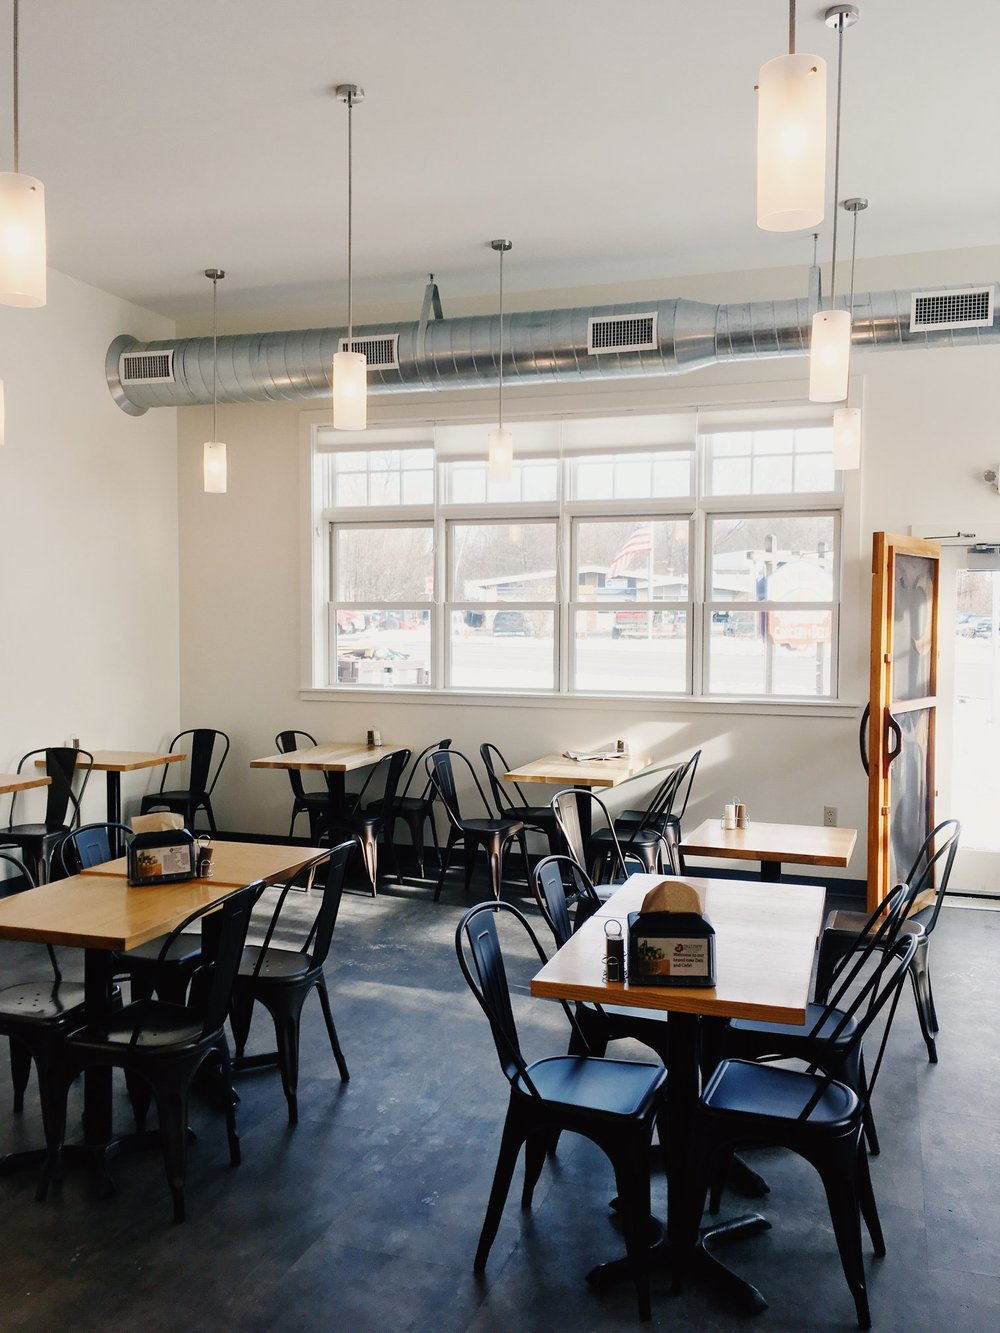 The cafe space when it first opened, featuring soft lighting and big sunny windows